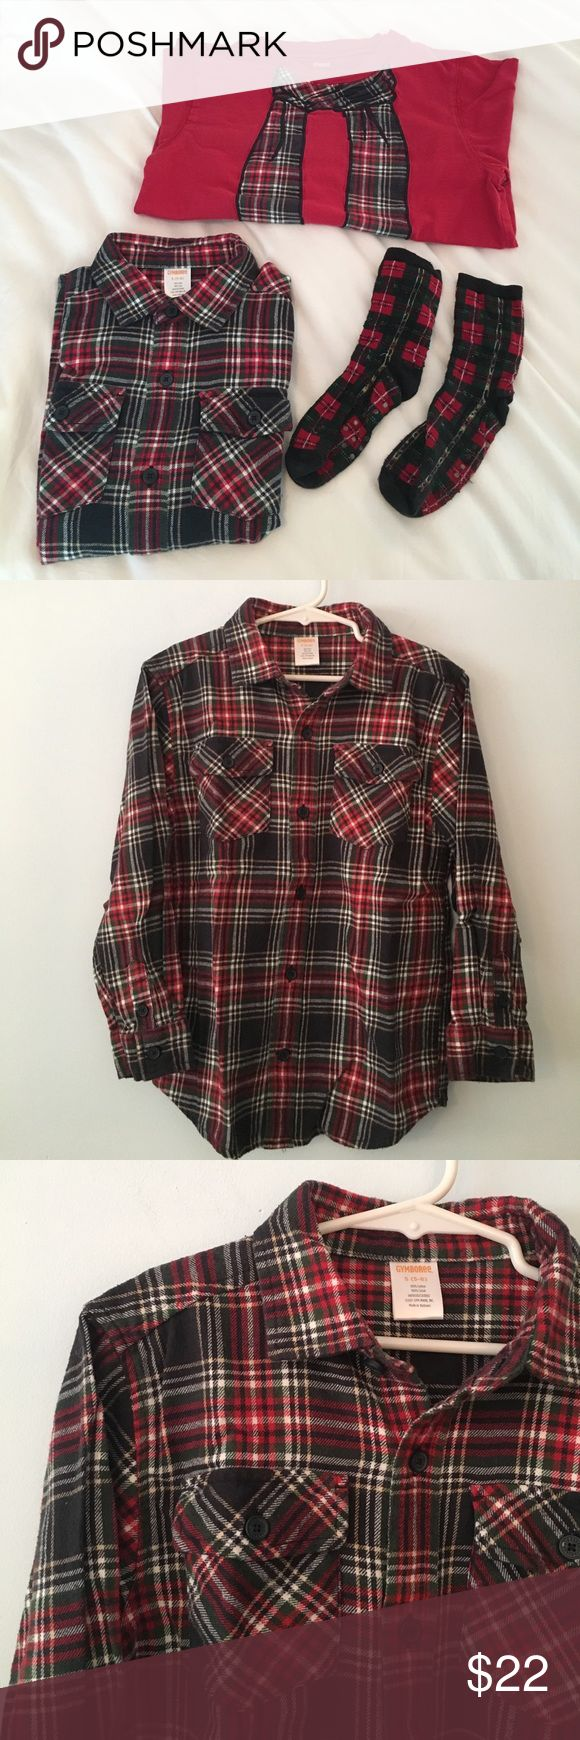 Gymboree plaid bundle Excellent used condition Gymboree plaid bundle. 2 shirts - 1. Plaid button down size small 5-6, 100% cotton. 2. Red long sleeves tee with plaid scarf. Size 7, 100% cotton. Although tee is size 7 it is about the same size as plaid shirt, only has longer arms. Also includes matching plaid socks, these have some pilling. Gymboree Matching Sets